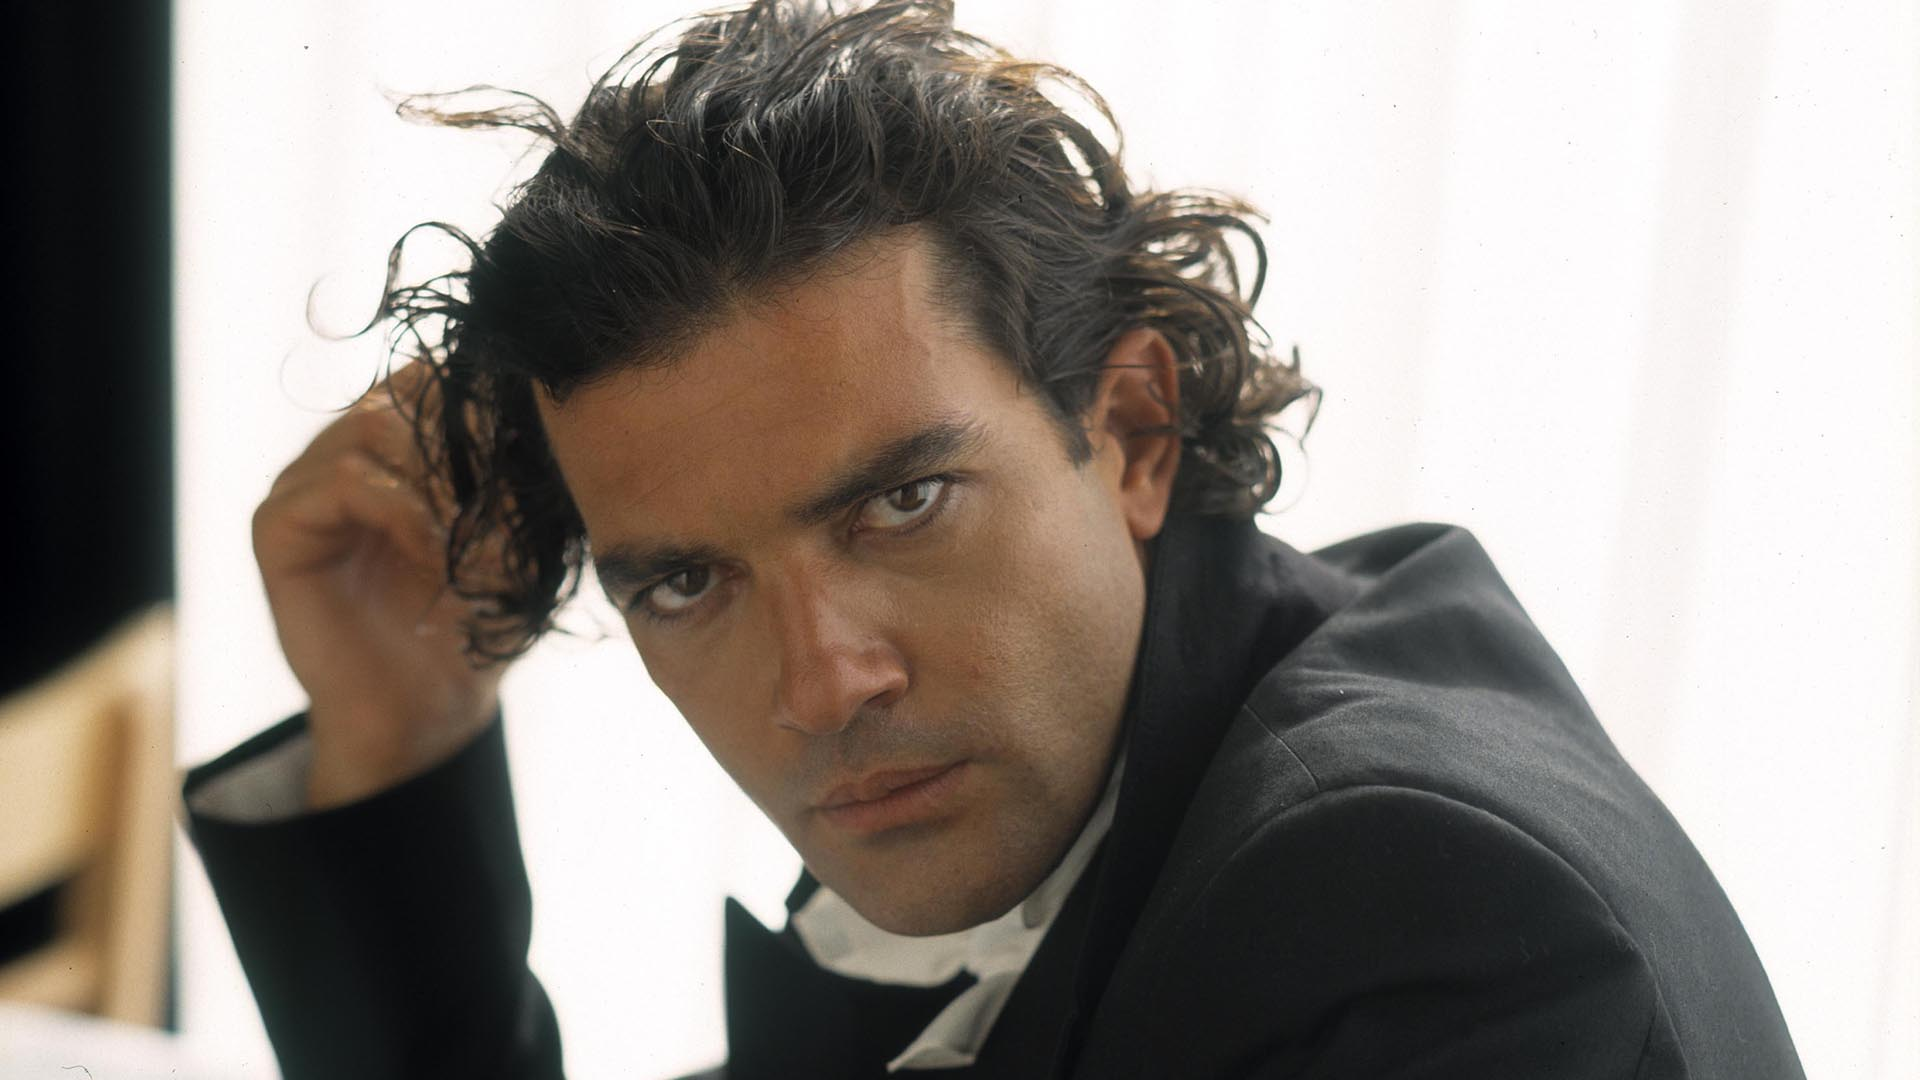 15 HD Antonio Banderas Wallpapers - HDWallSource.com Antonio Banderas